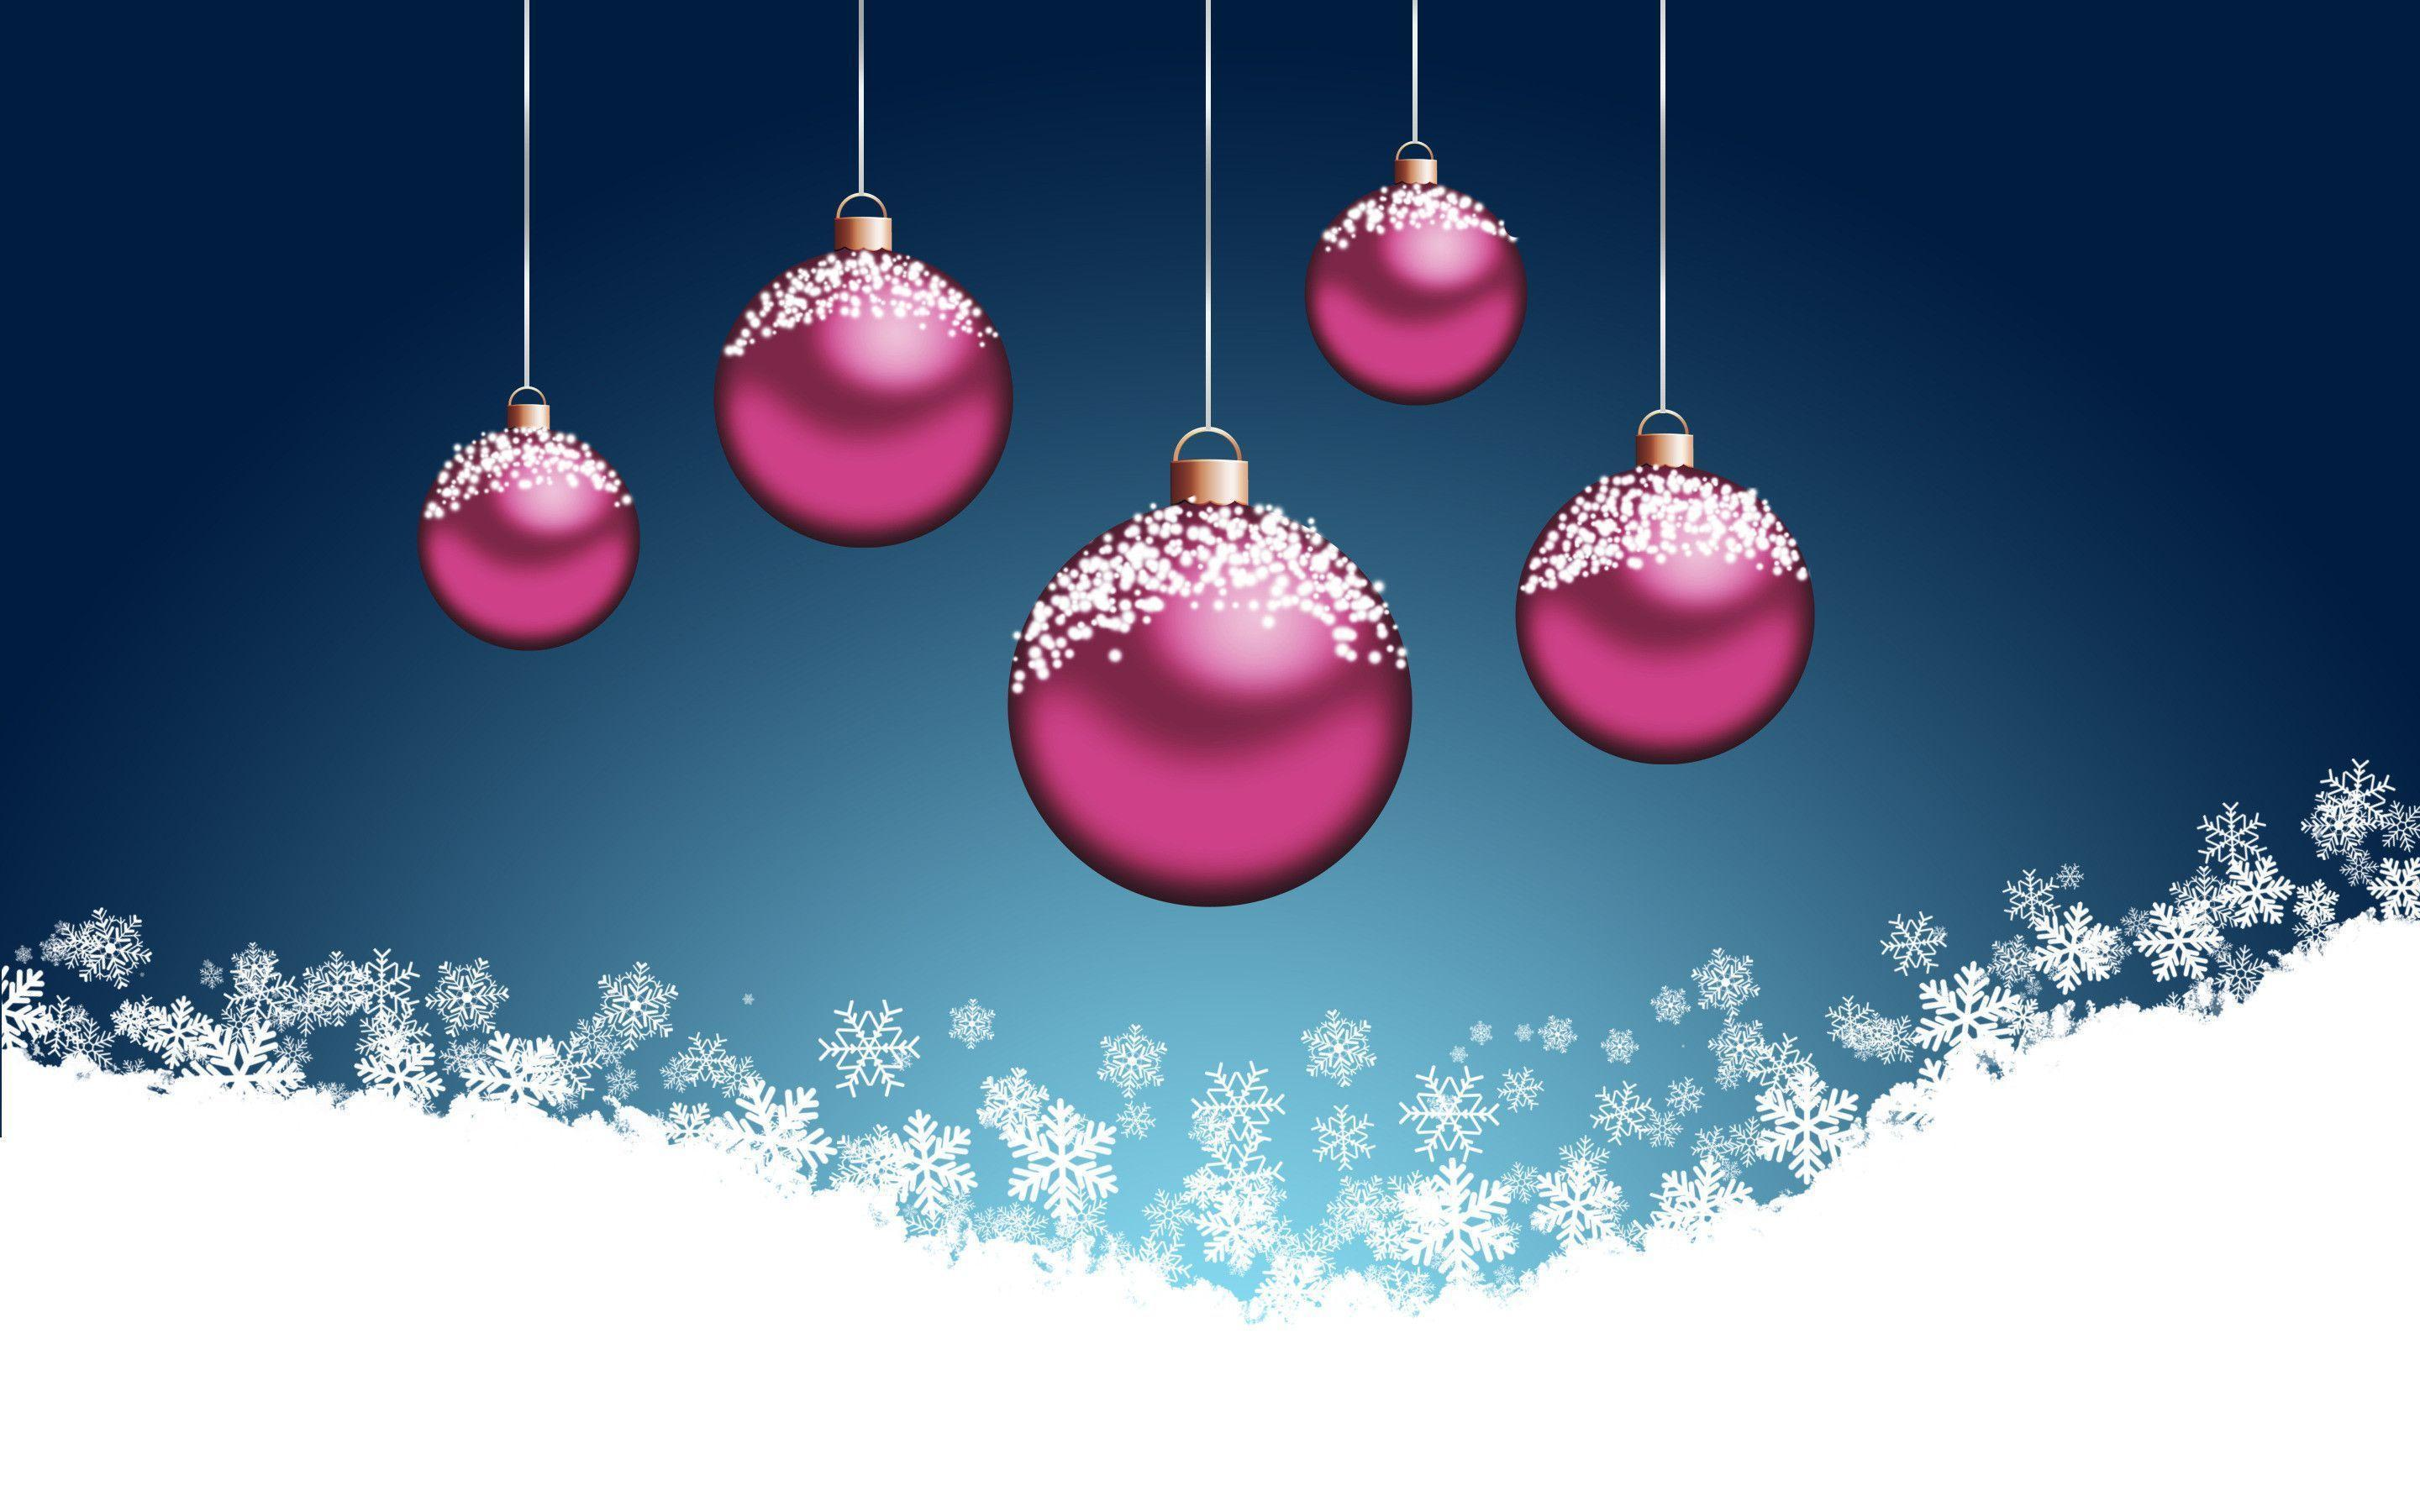 Christmas Ornaments Wallpapers - Wallpaper Cave